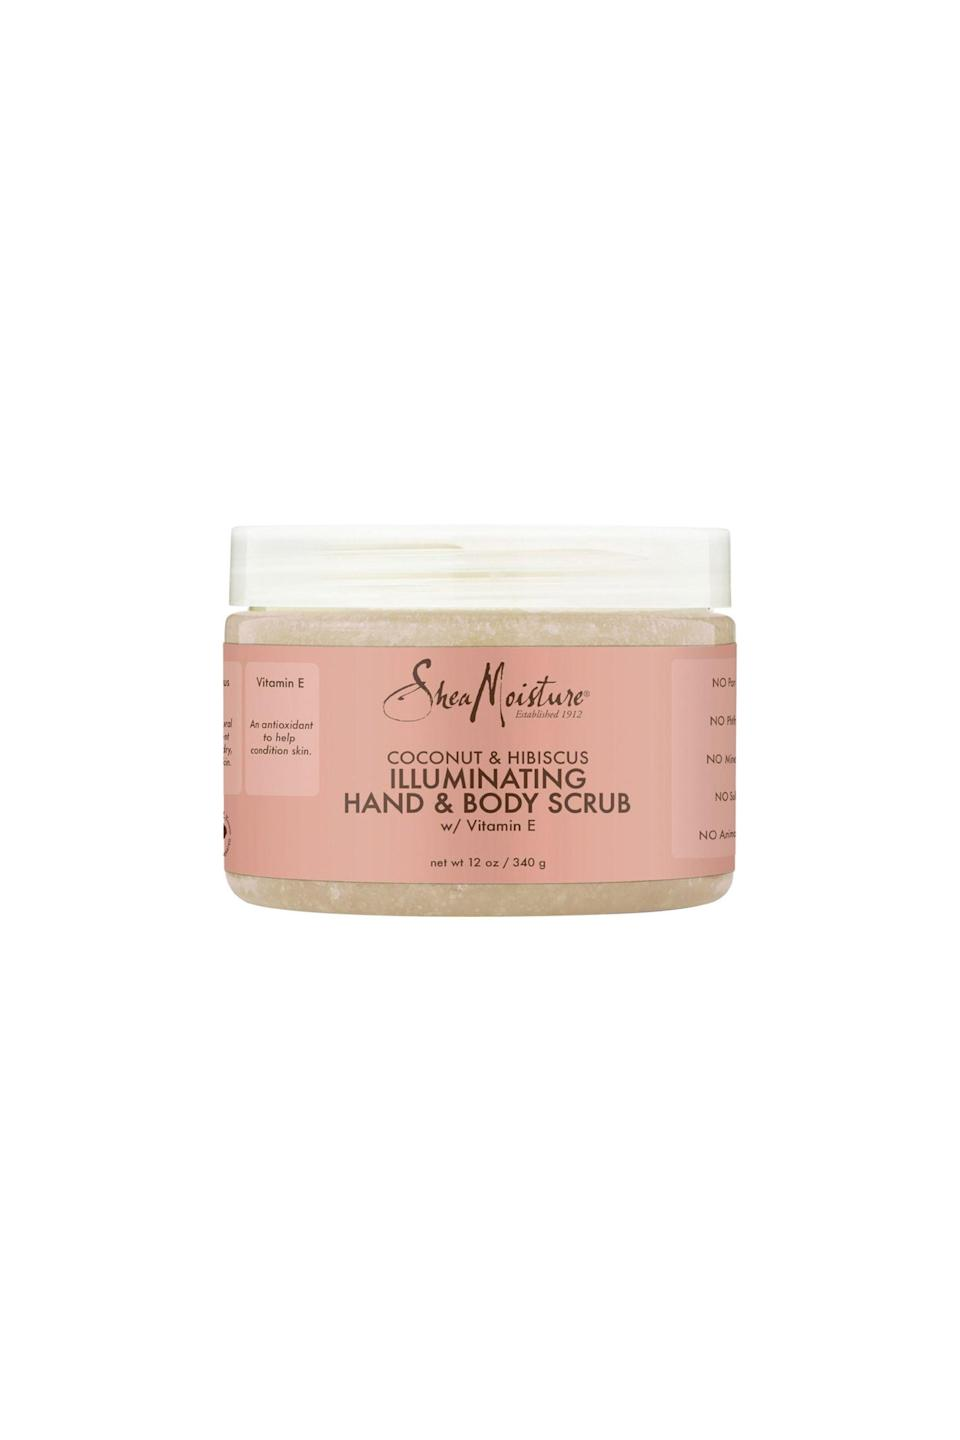 """<p><strong>Shea Moisture</strong></p><p>ulta.com</p><p><strong>$11.99</strong></p><p><a href=""""https://go.redirectingat.com?id=74968X1596630&url=https%3A%2F%2Fwww.ulta.com%2Fcoconut-hibiscus-hand-body-scrub%3FproductId%3DxlsImpprod12081143&sref=https%3A%2F%2Fwww.cosmopolitan.com%2Fstyle-beauty%2Ffashion%2Fg36052314%2Fstepmom-gifts%2F"""" rel=""""nofollow noopener"""" target=""""_blank"""" data-ylk=""""slk:Shop Now"""" class=""""link rapid-noclick-resp"""">Shop Now</a></p><p>Coconut and hibiscus are a match made in heaven—and this moisturizing sugar scrub is here to prove it.</p>"""